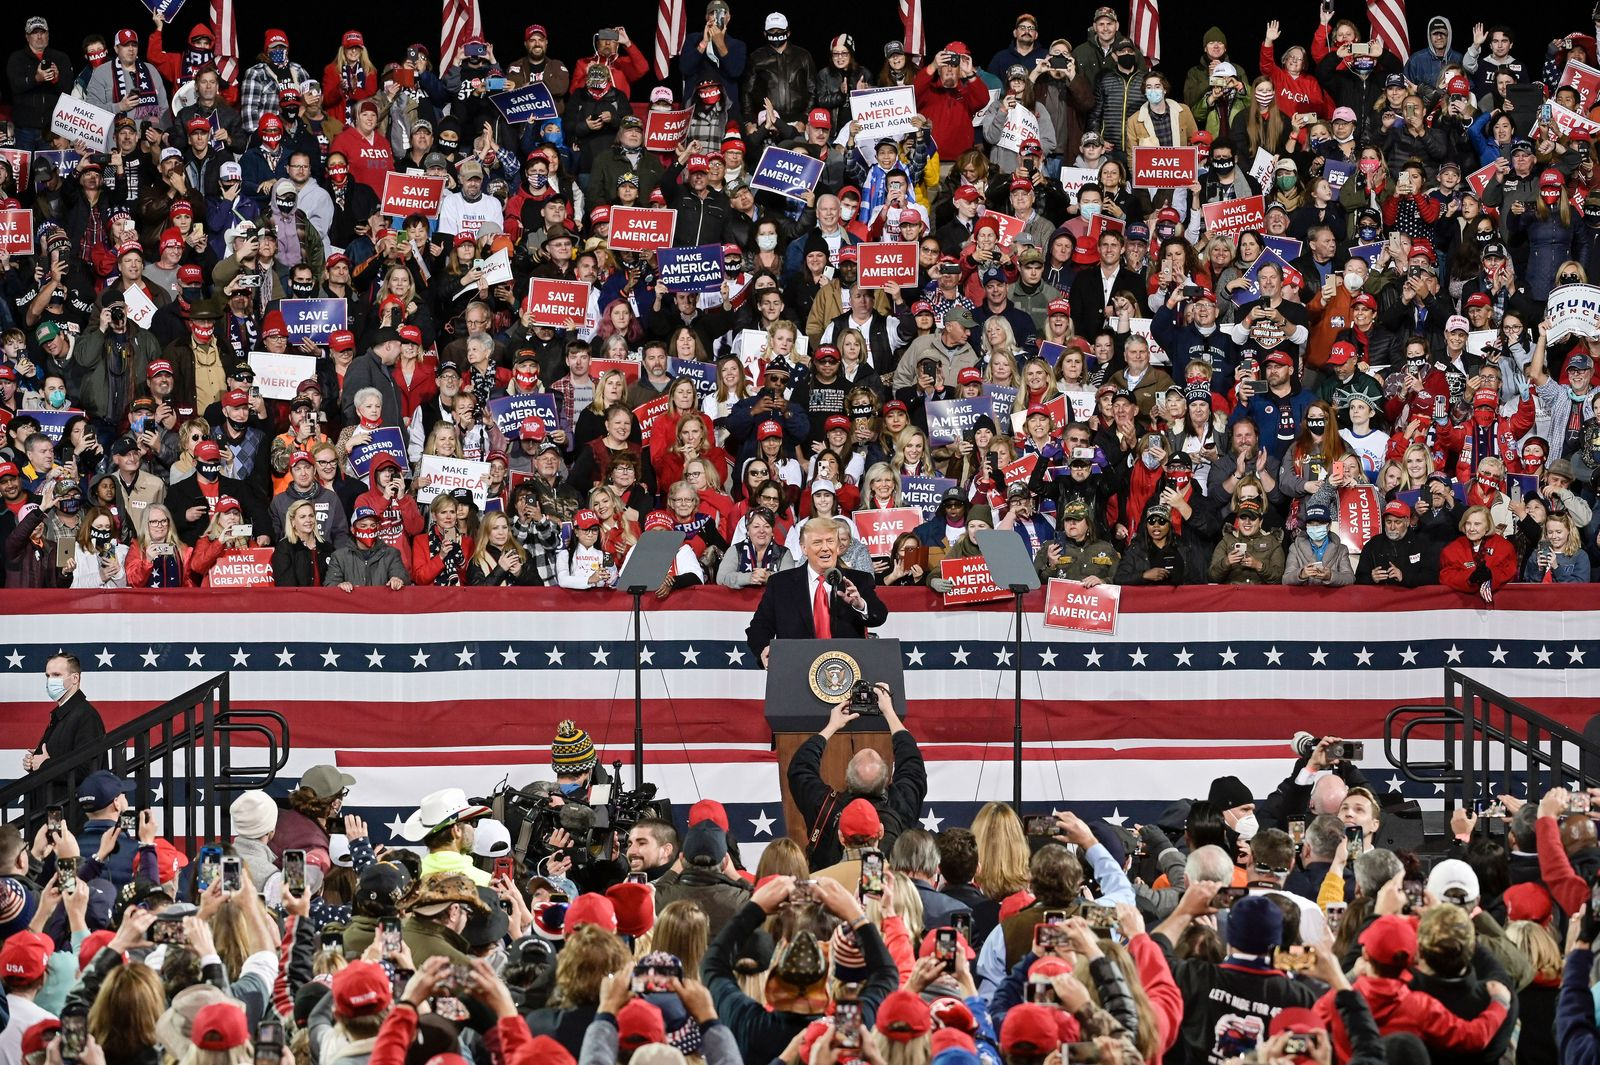 President Trump campaigns for Georgia Republican Senators Perdue and Loeffler, Valdosta, USA - 05 Dec 2020